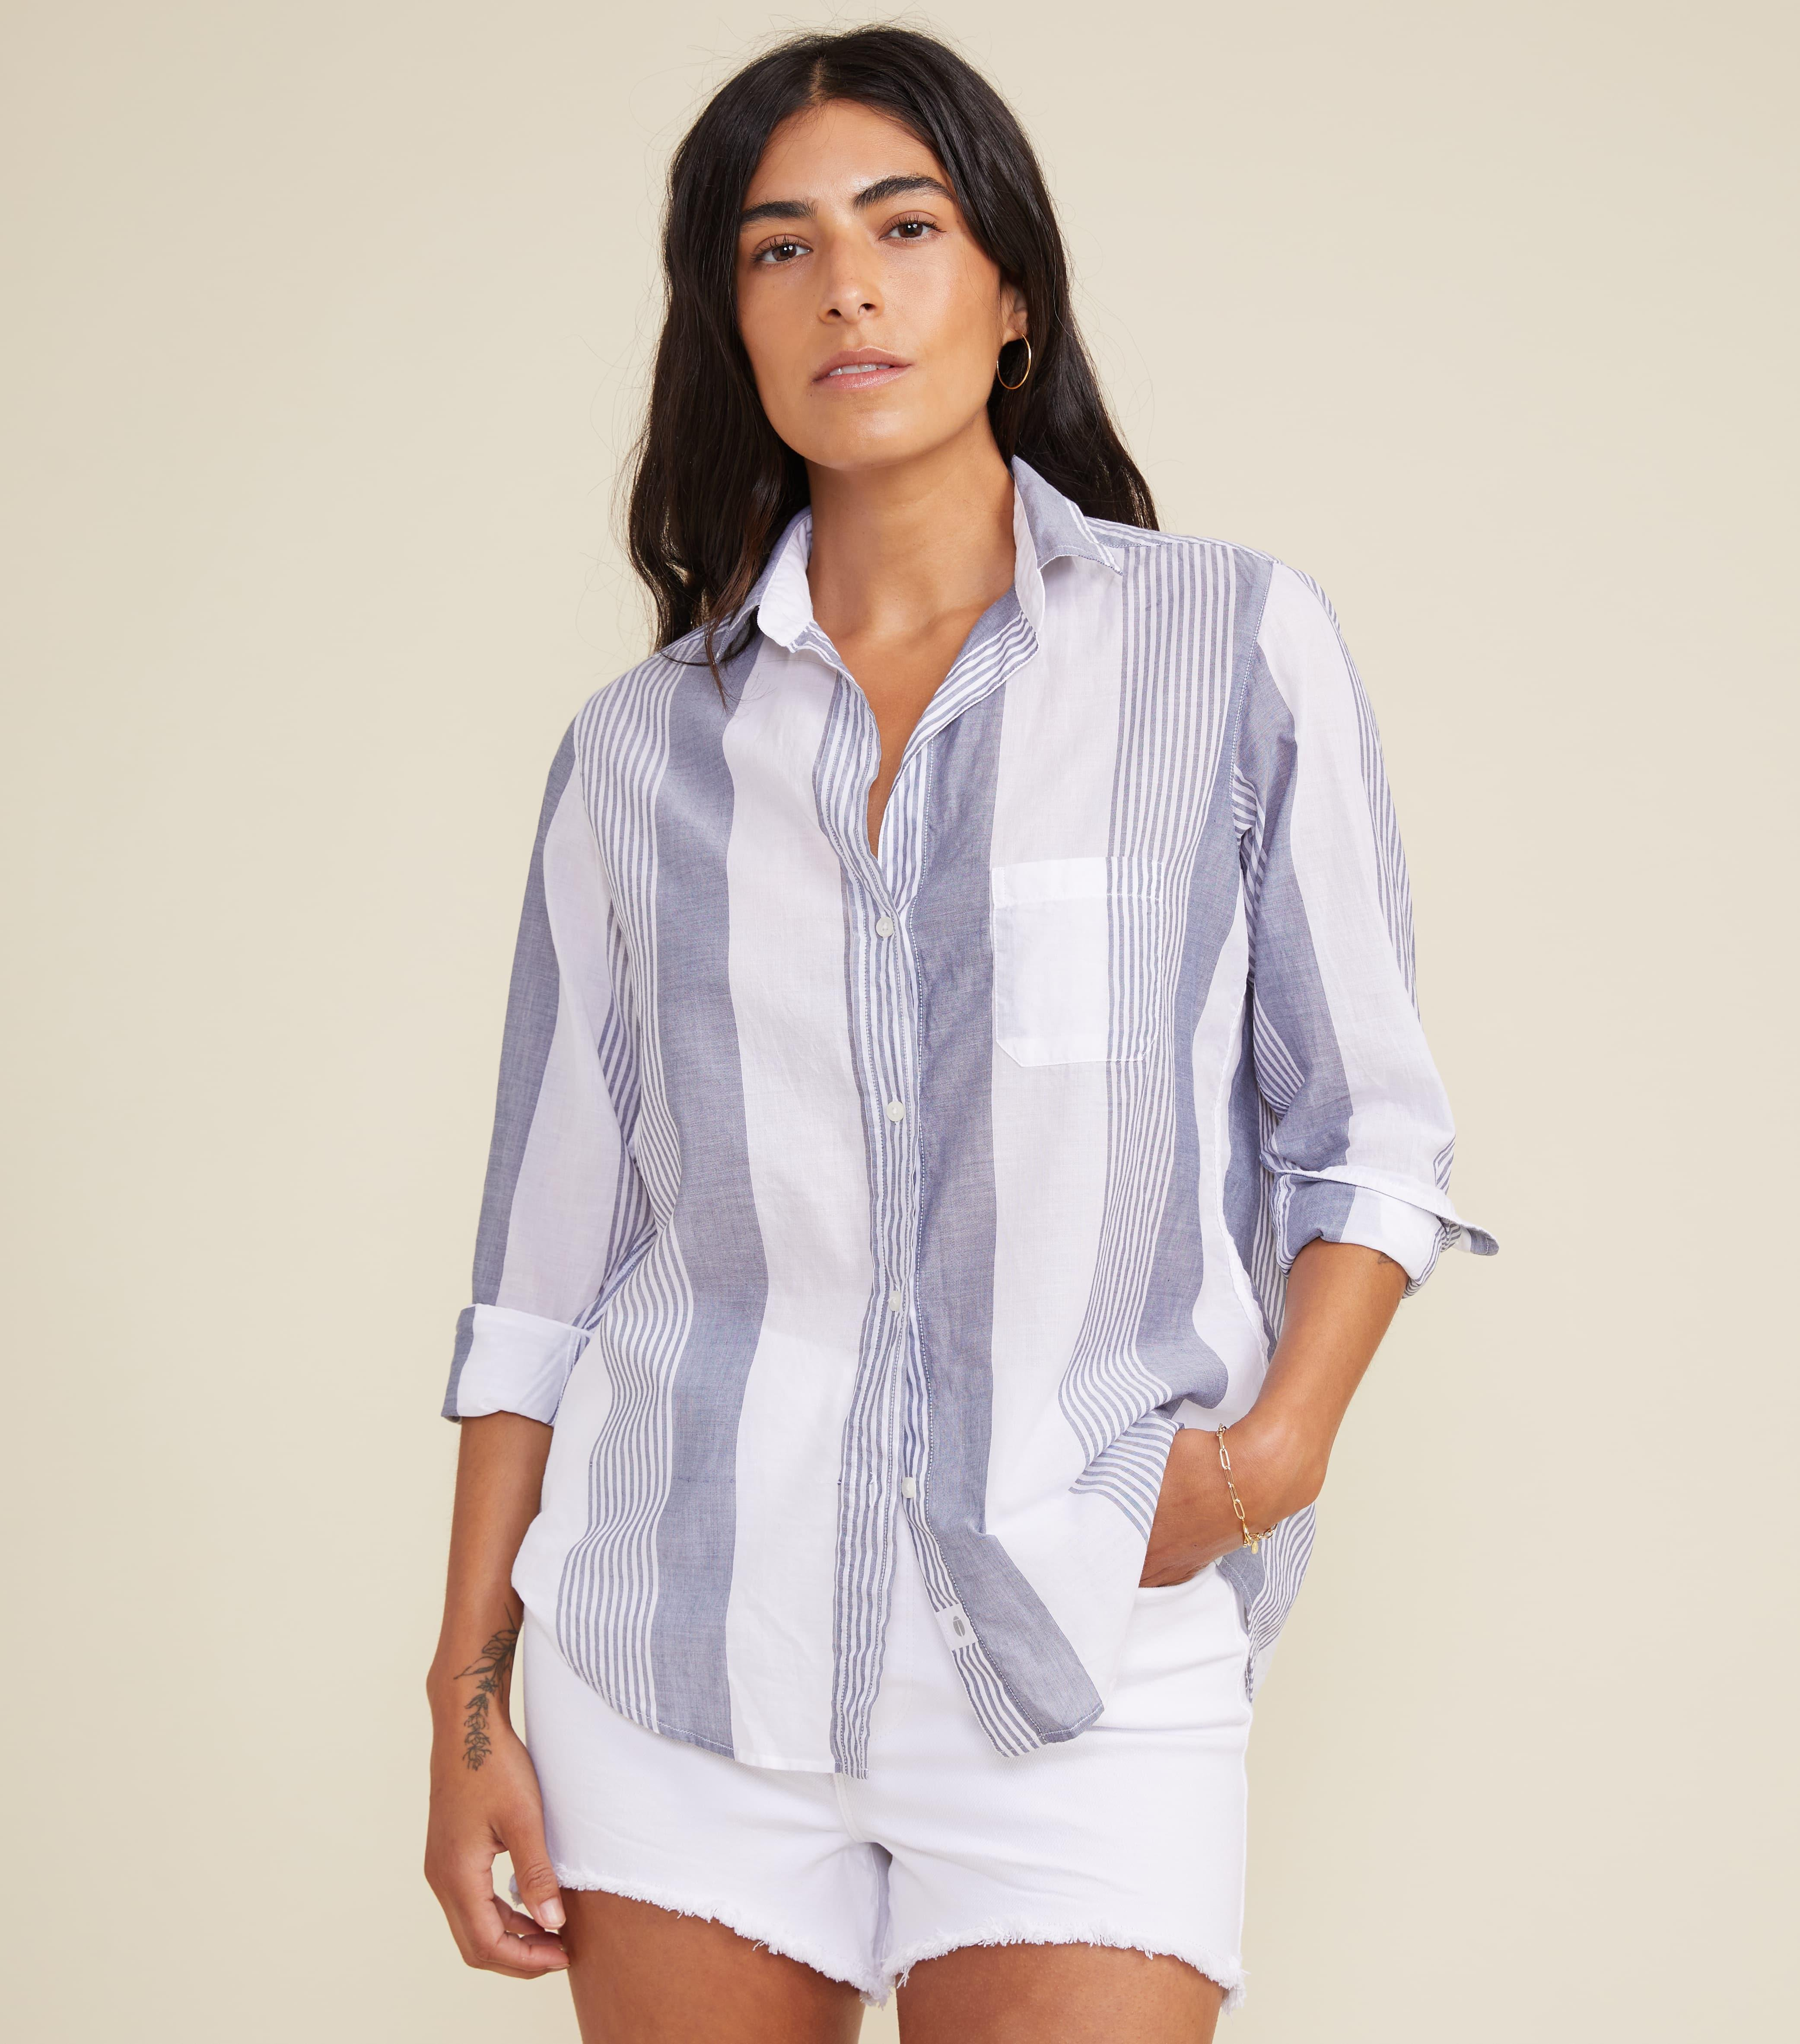 The Hero Button-Up Shirt Wide Blue Stripes, Tissue Cotton